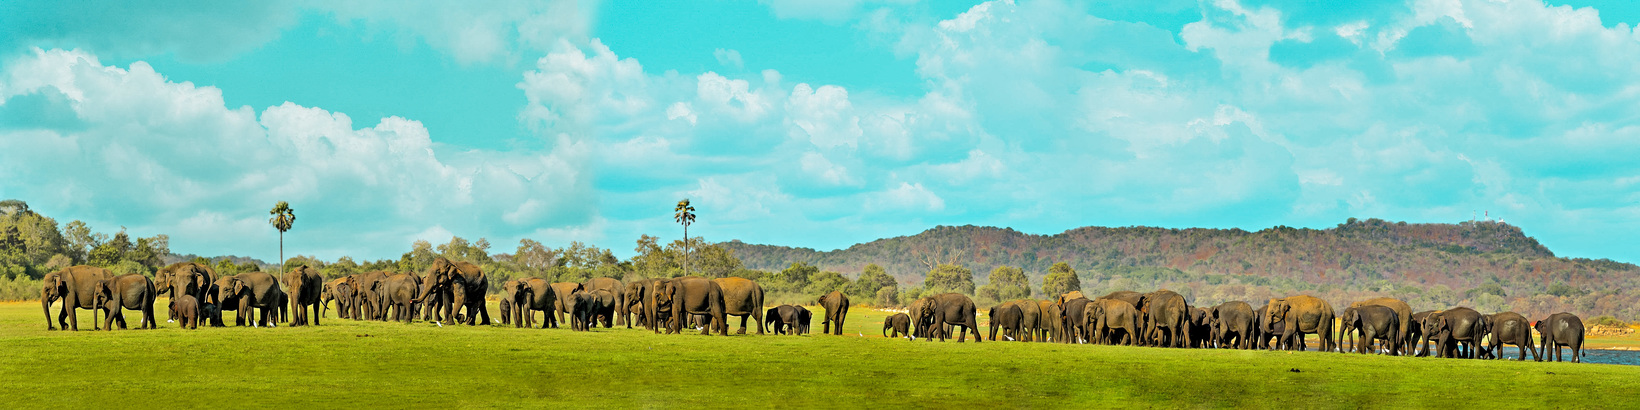 The Great Elephant Gathering of Asia